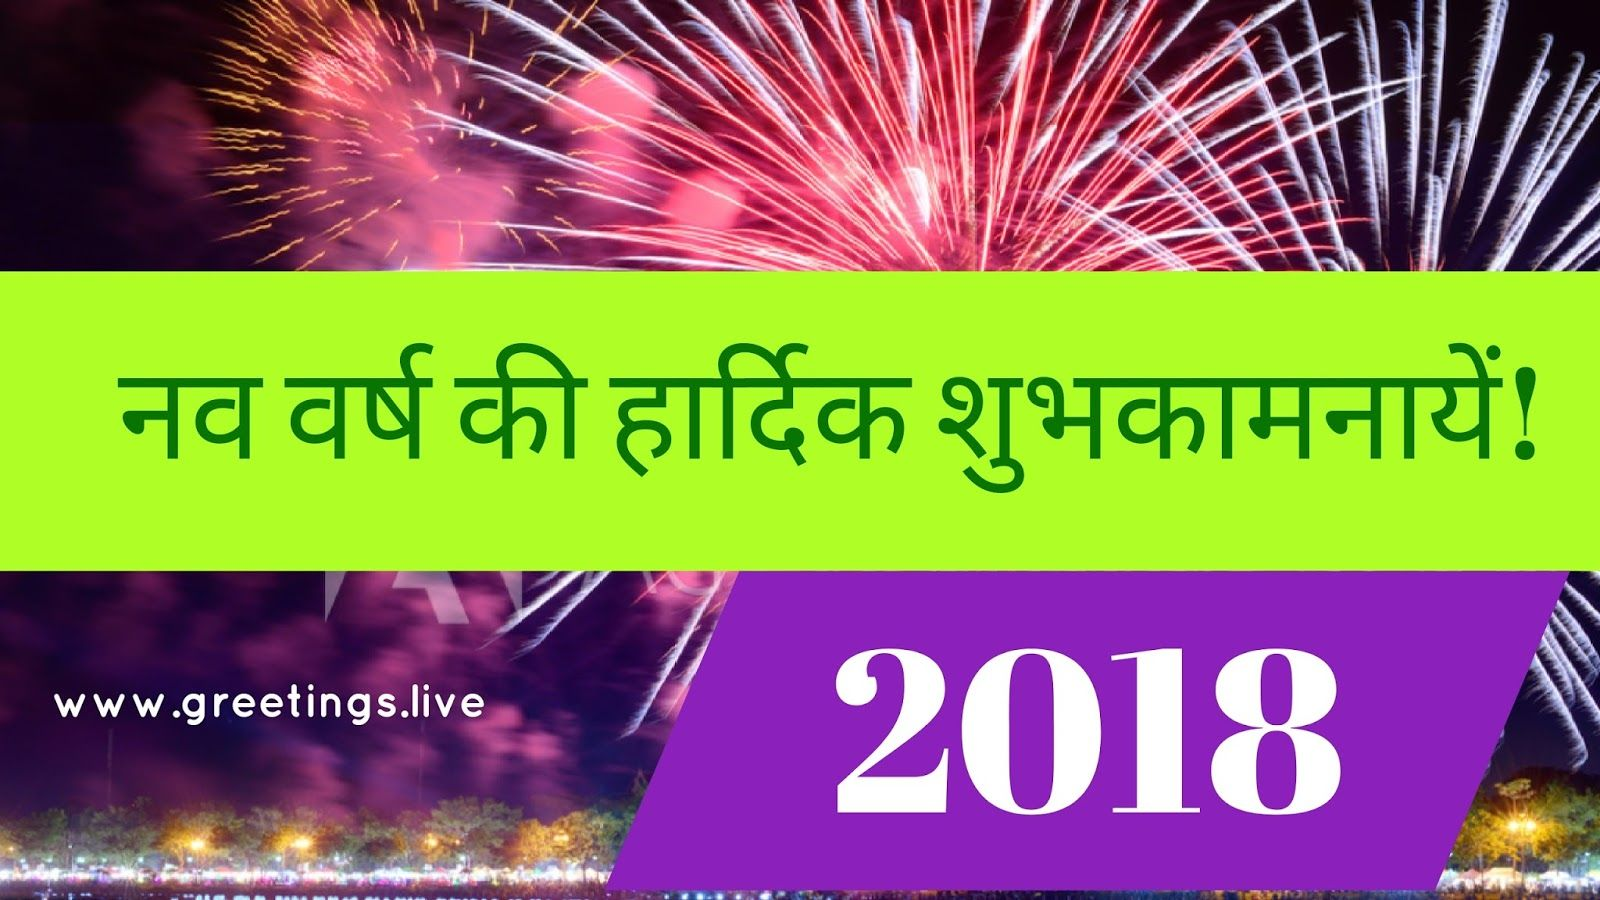 New Year In Hindi Greetings Fire Works 2018 Greetings Live Pinterest